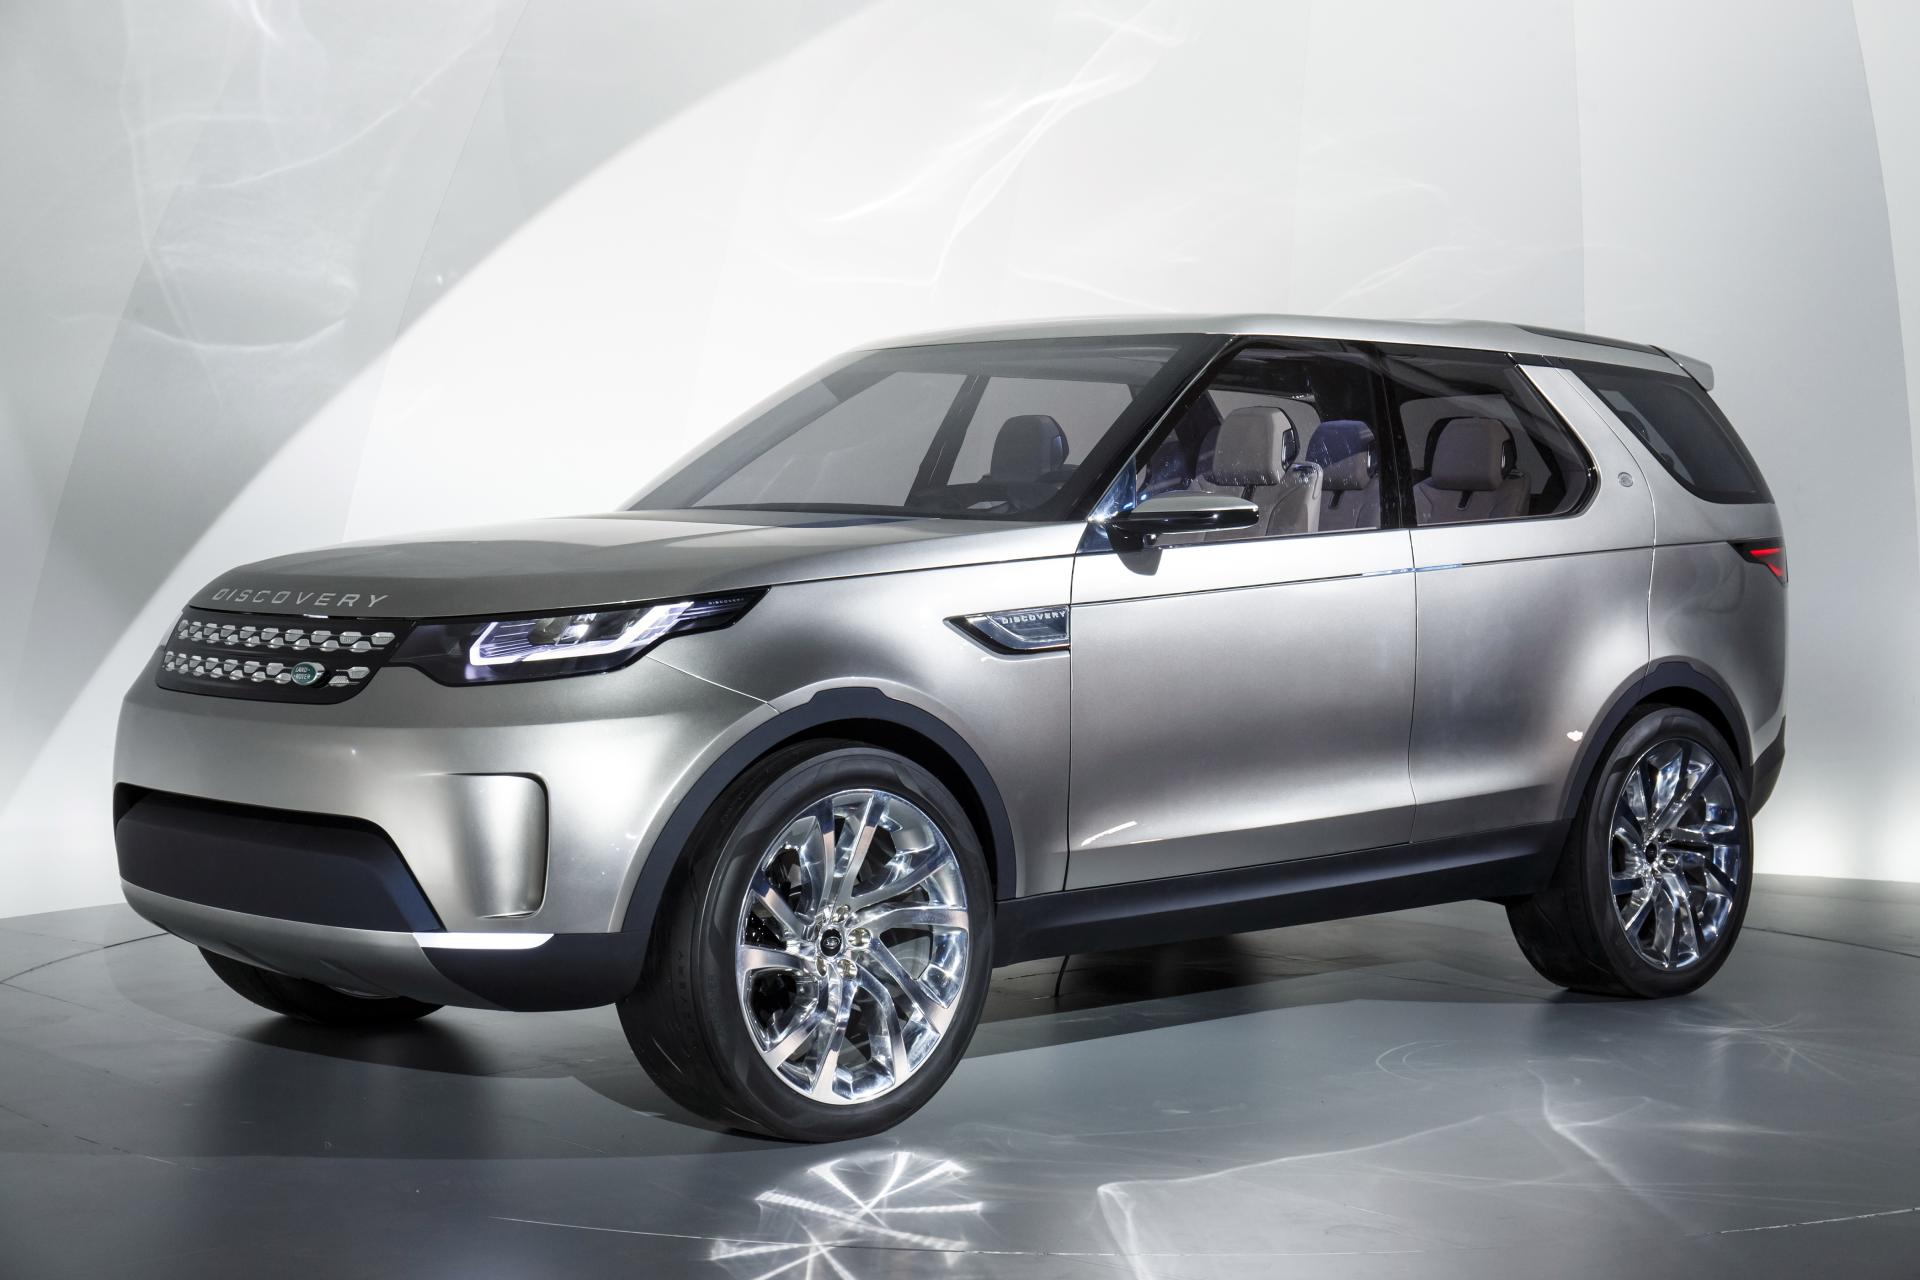 2014 land rover discovery vision concept news and information research and pricing. Black Bedroom Furniture Sets. Home Design Ideas